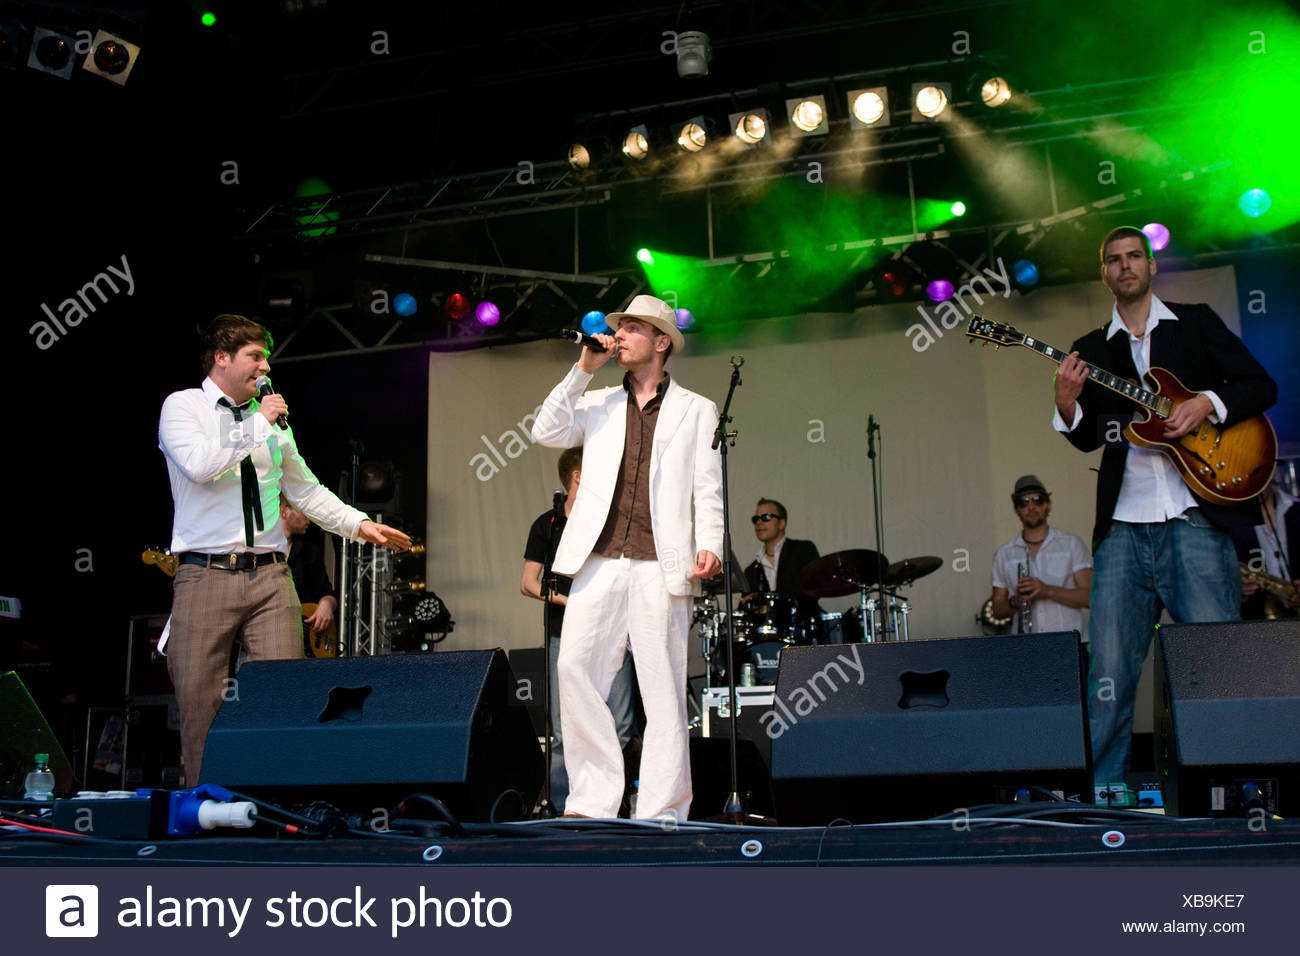 The Swiss rap and funk band Maenner am Meer live at soundcheck, Open Air festival in Sempach-Neuenkirch, Switzerland, Europe - Stock Image